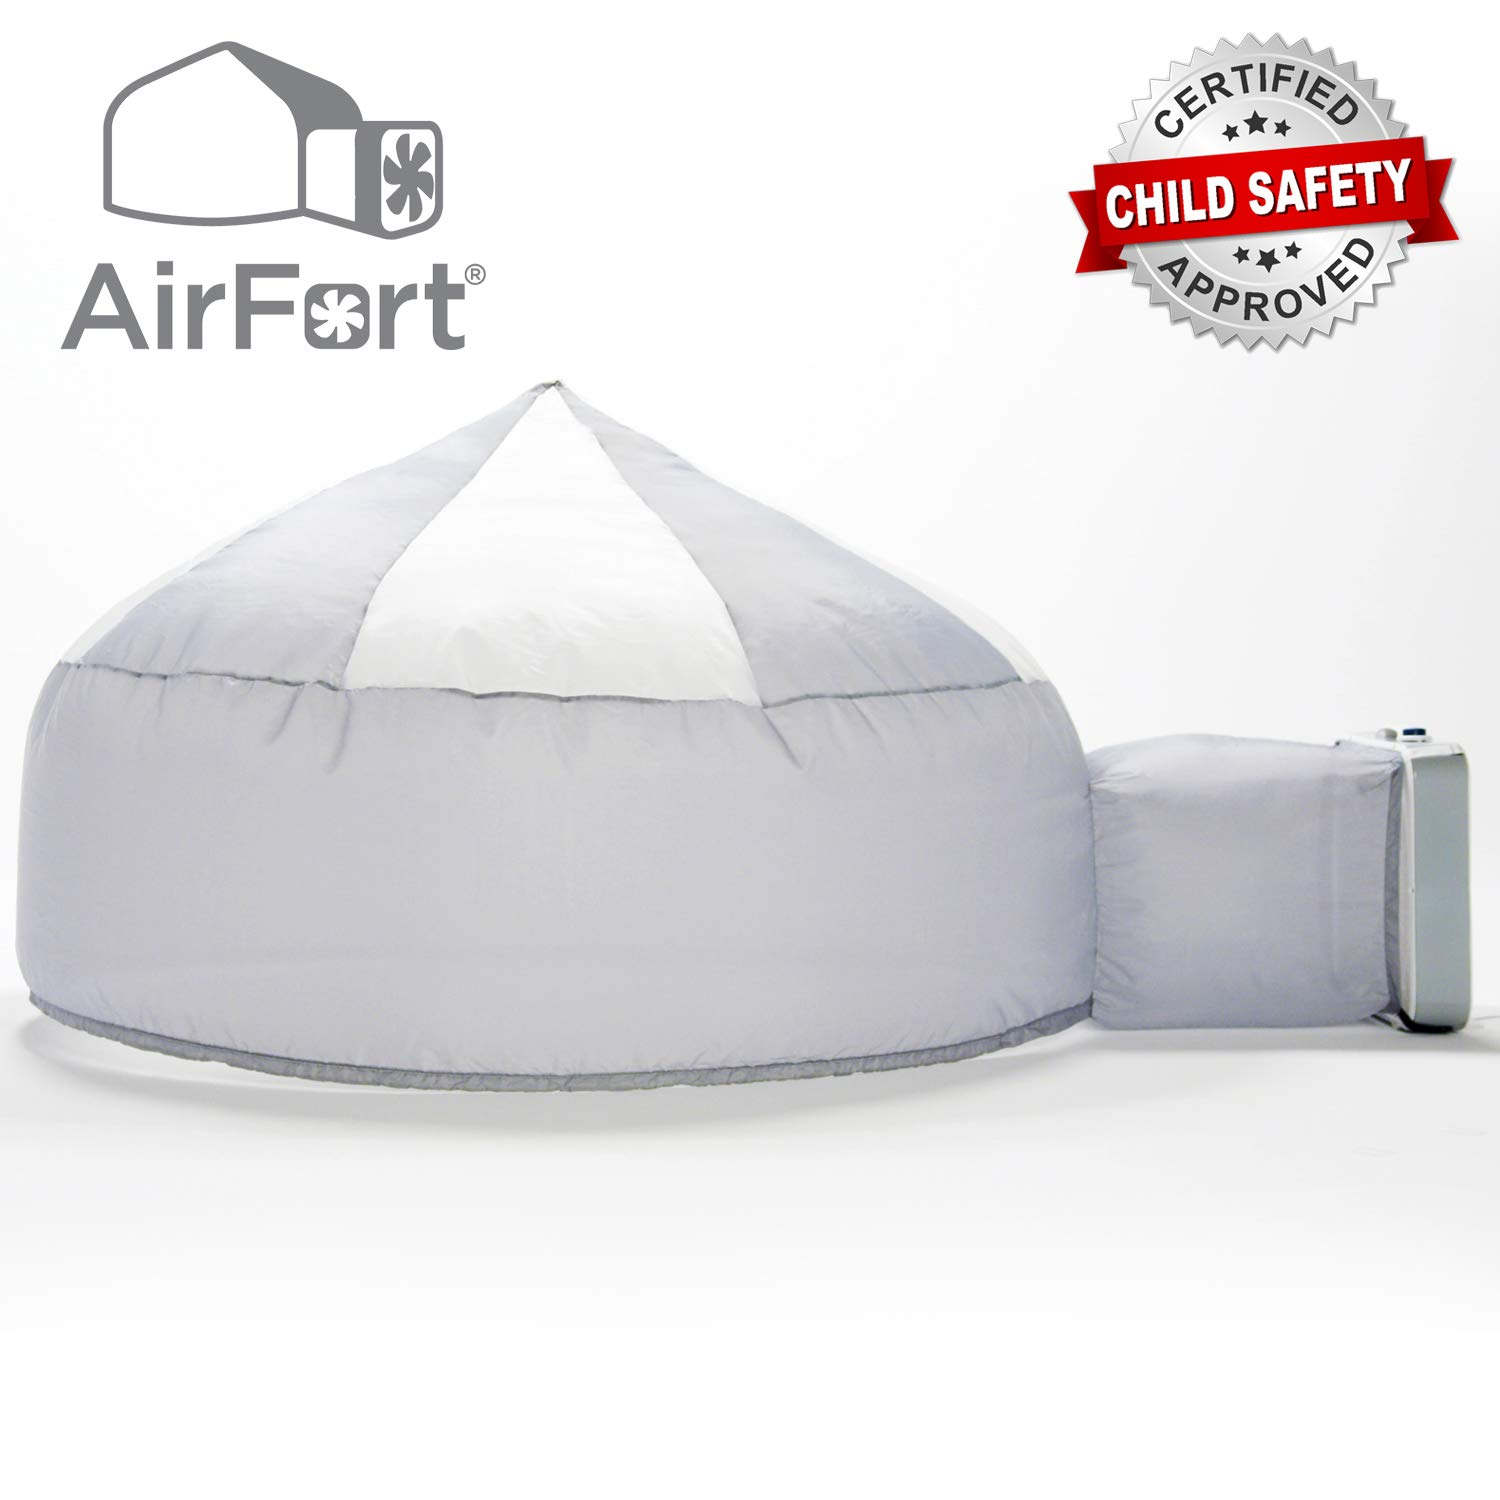 The Original AirFort Build A Fort in 30 Seconds, Inflatable for Kids, Gray/White